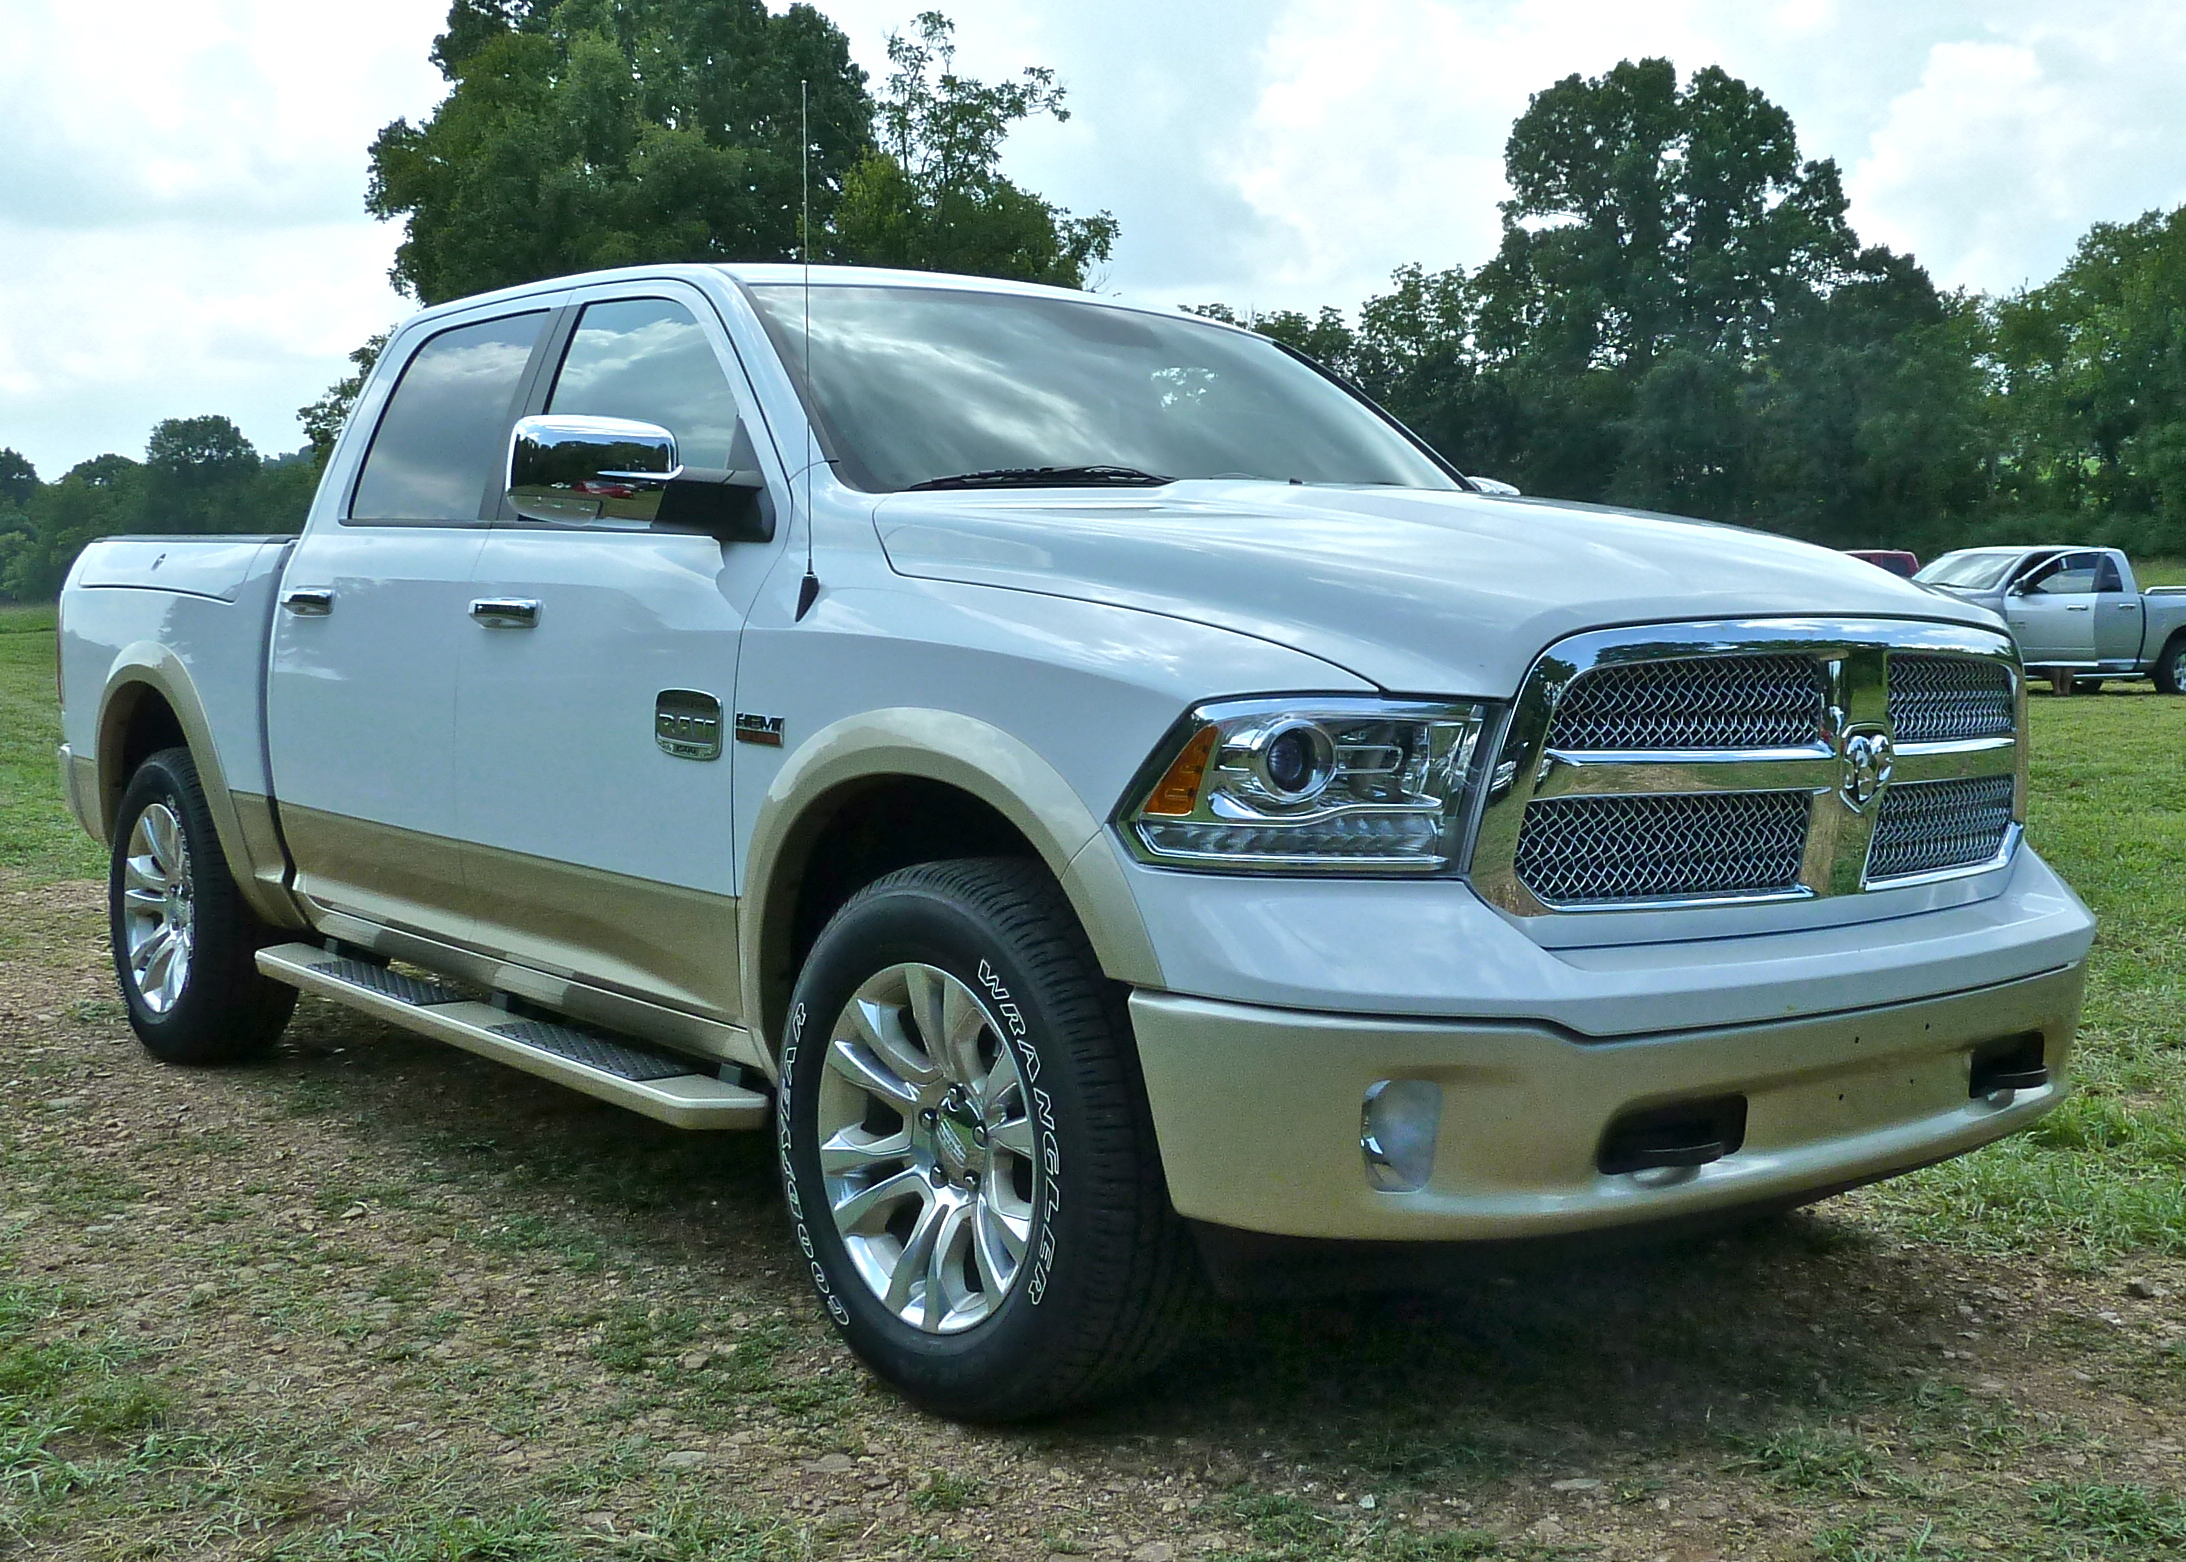 ram dodge sale used for lifted truck